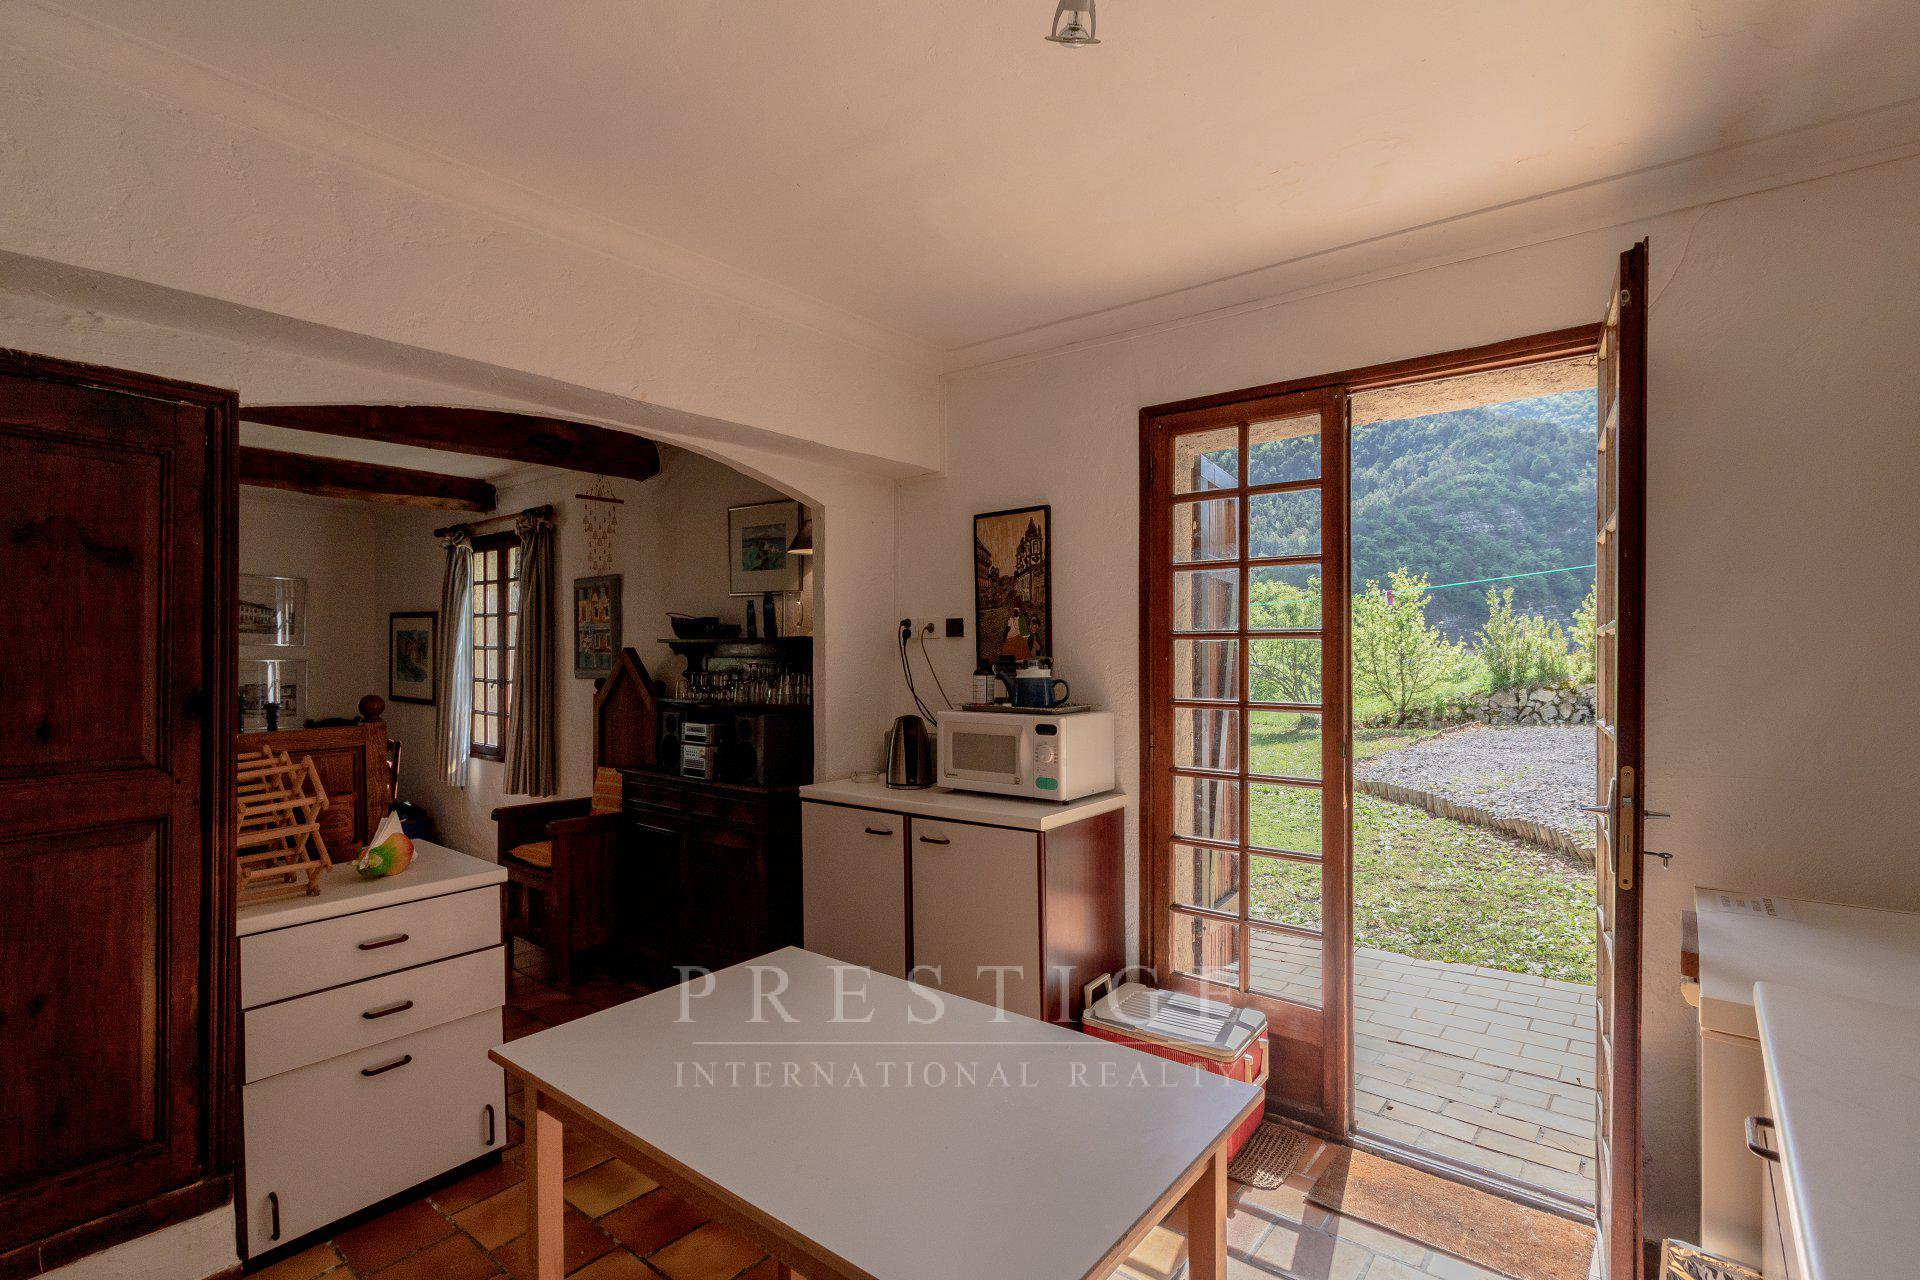 Entrevaux, villa 4 bedrooms with pool, amazing view